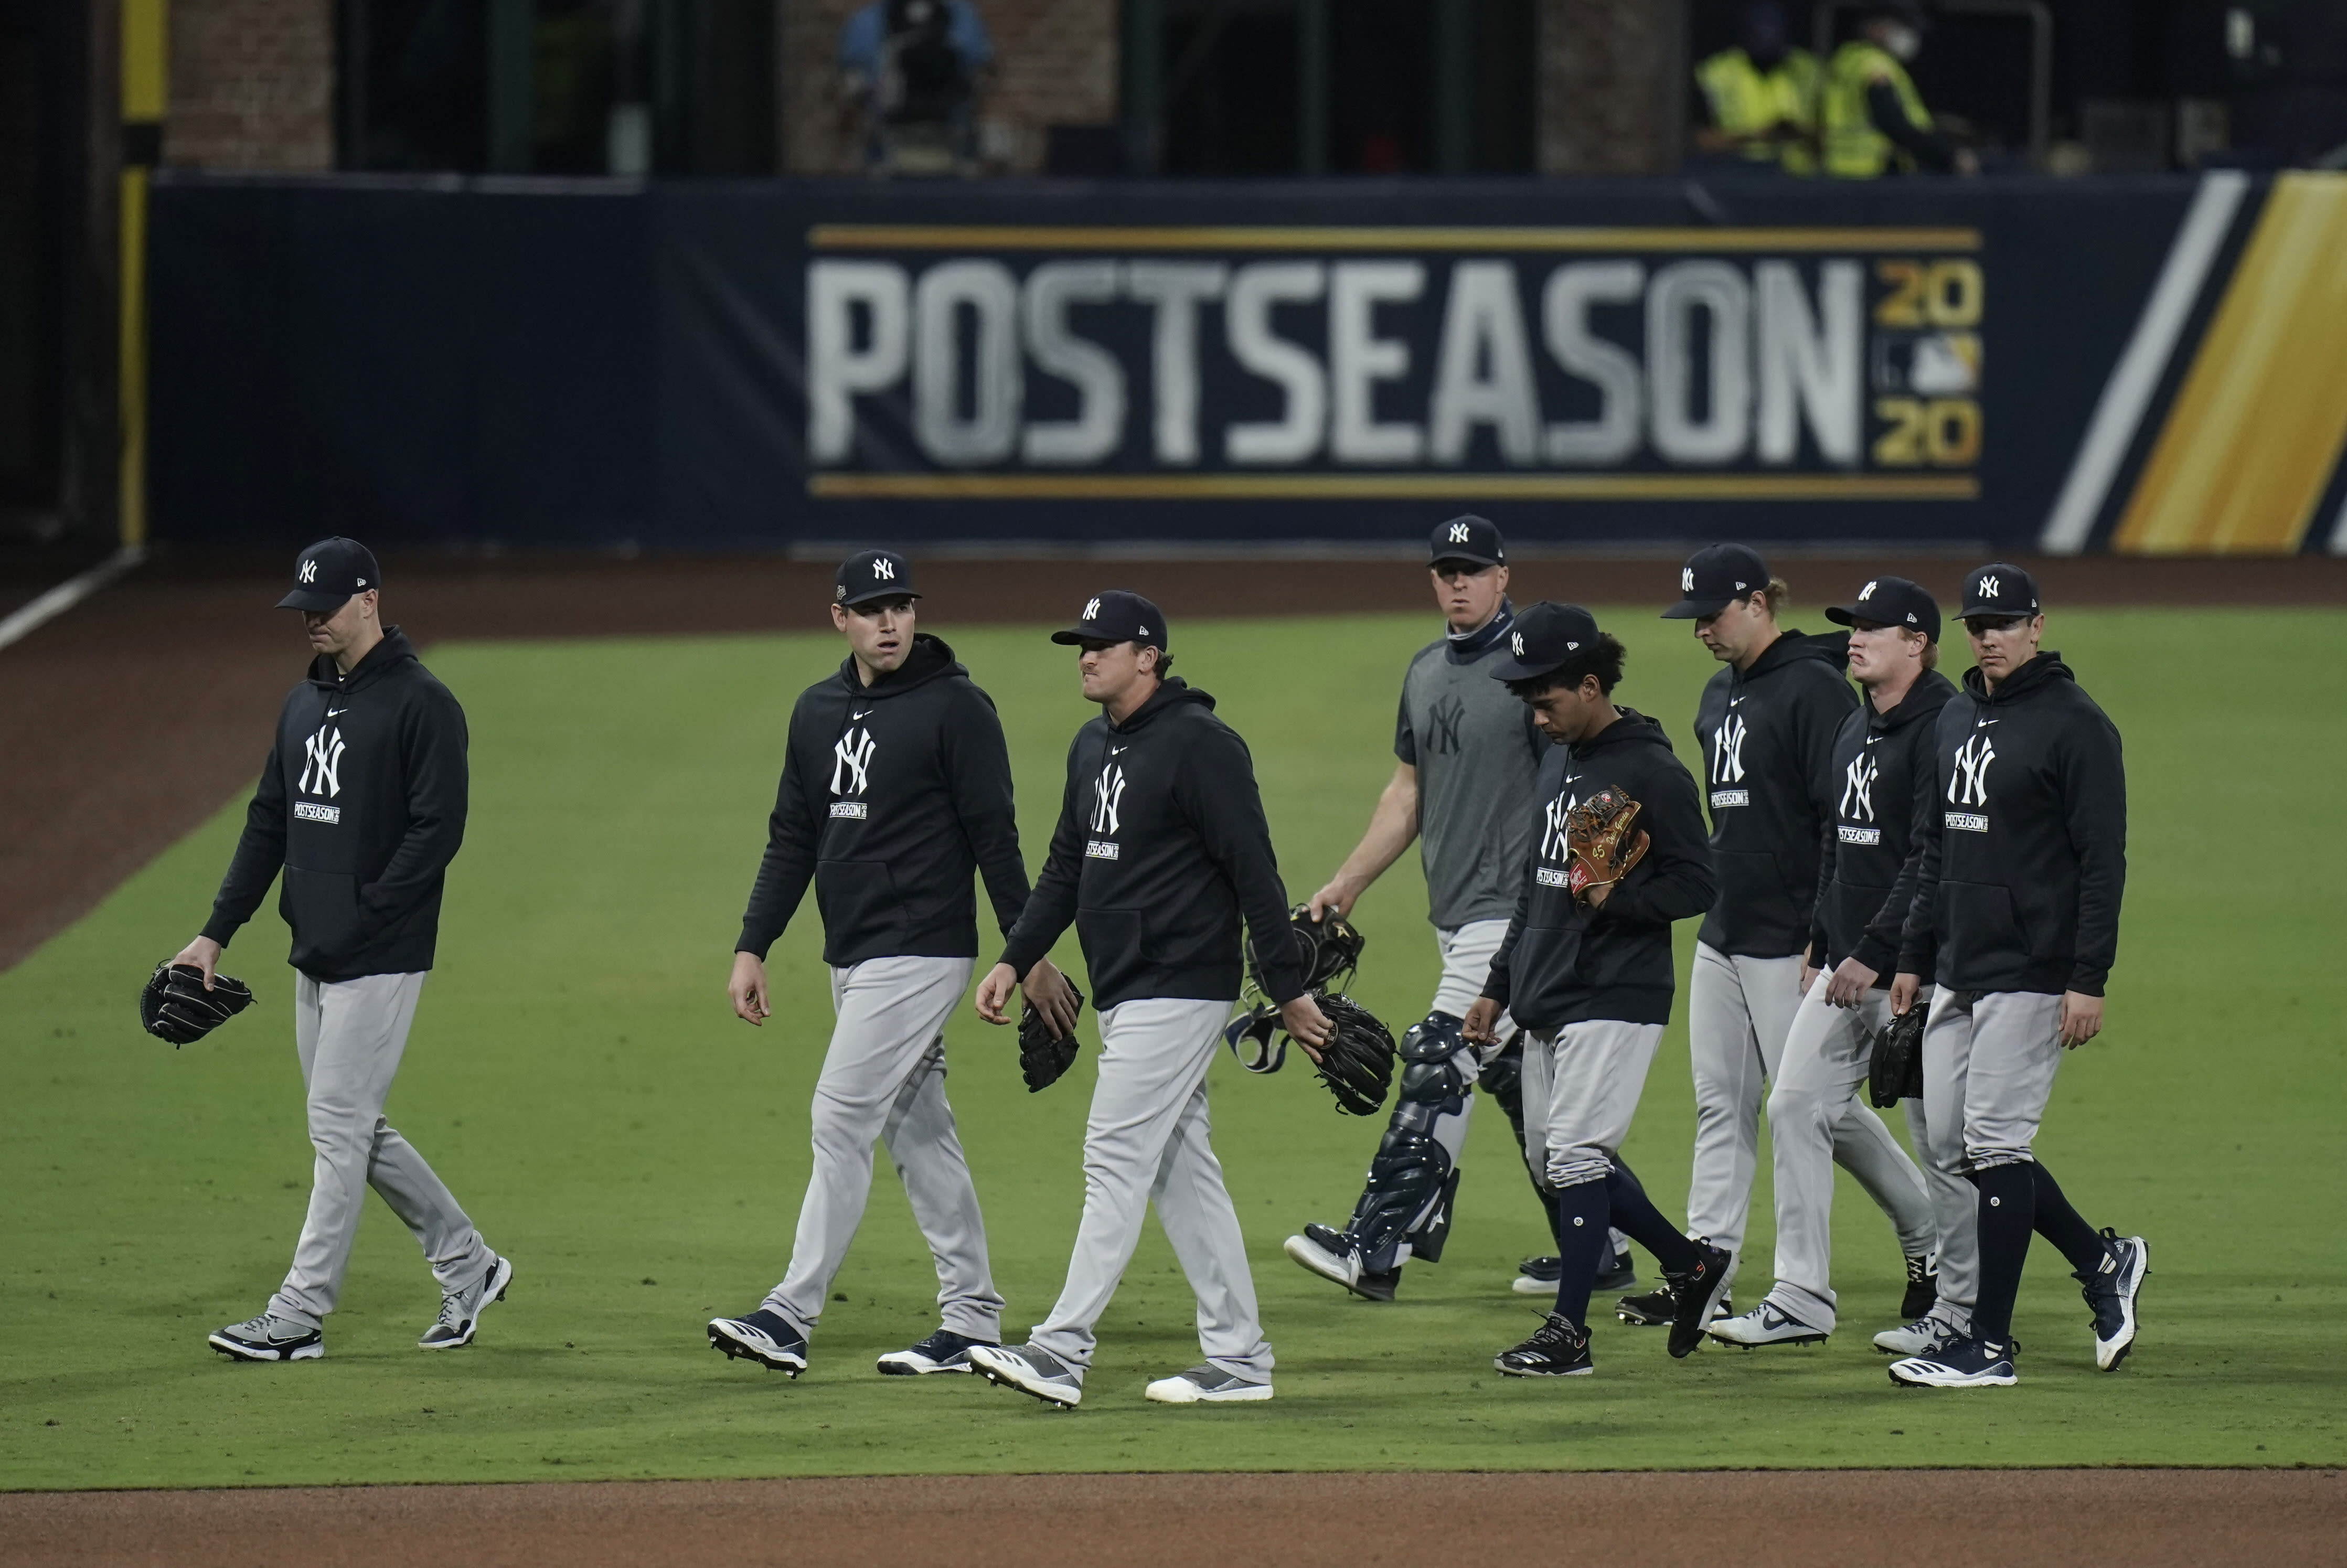 New York Yankees walk to the dugout following Game 5 of the baseball team's AL Division Series against the Tampa Bay Rays, Friday, Oct. 9, 2020, in San Diego. Tampa Bay won 2-1 to advance to the AL Championship Series. (AP Photo/Jae C. Hong)